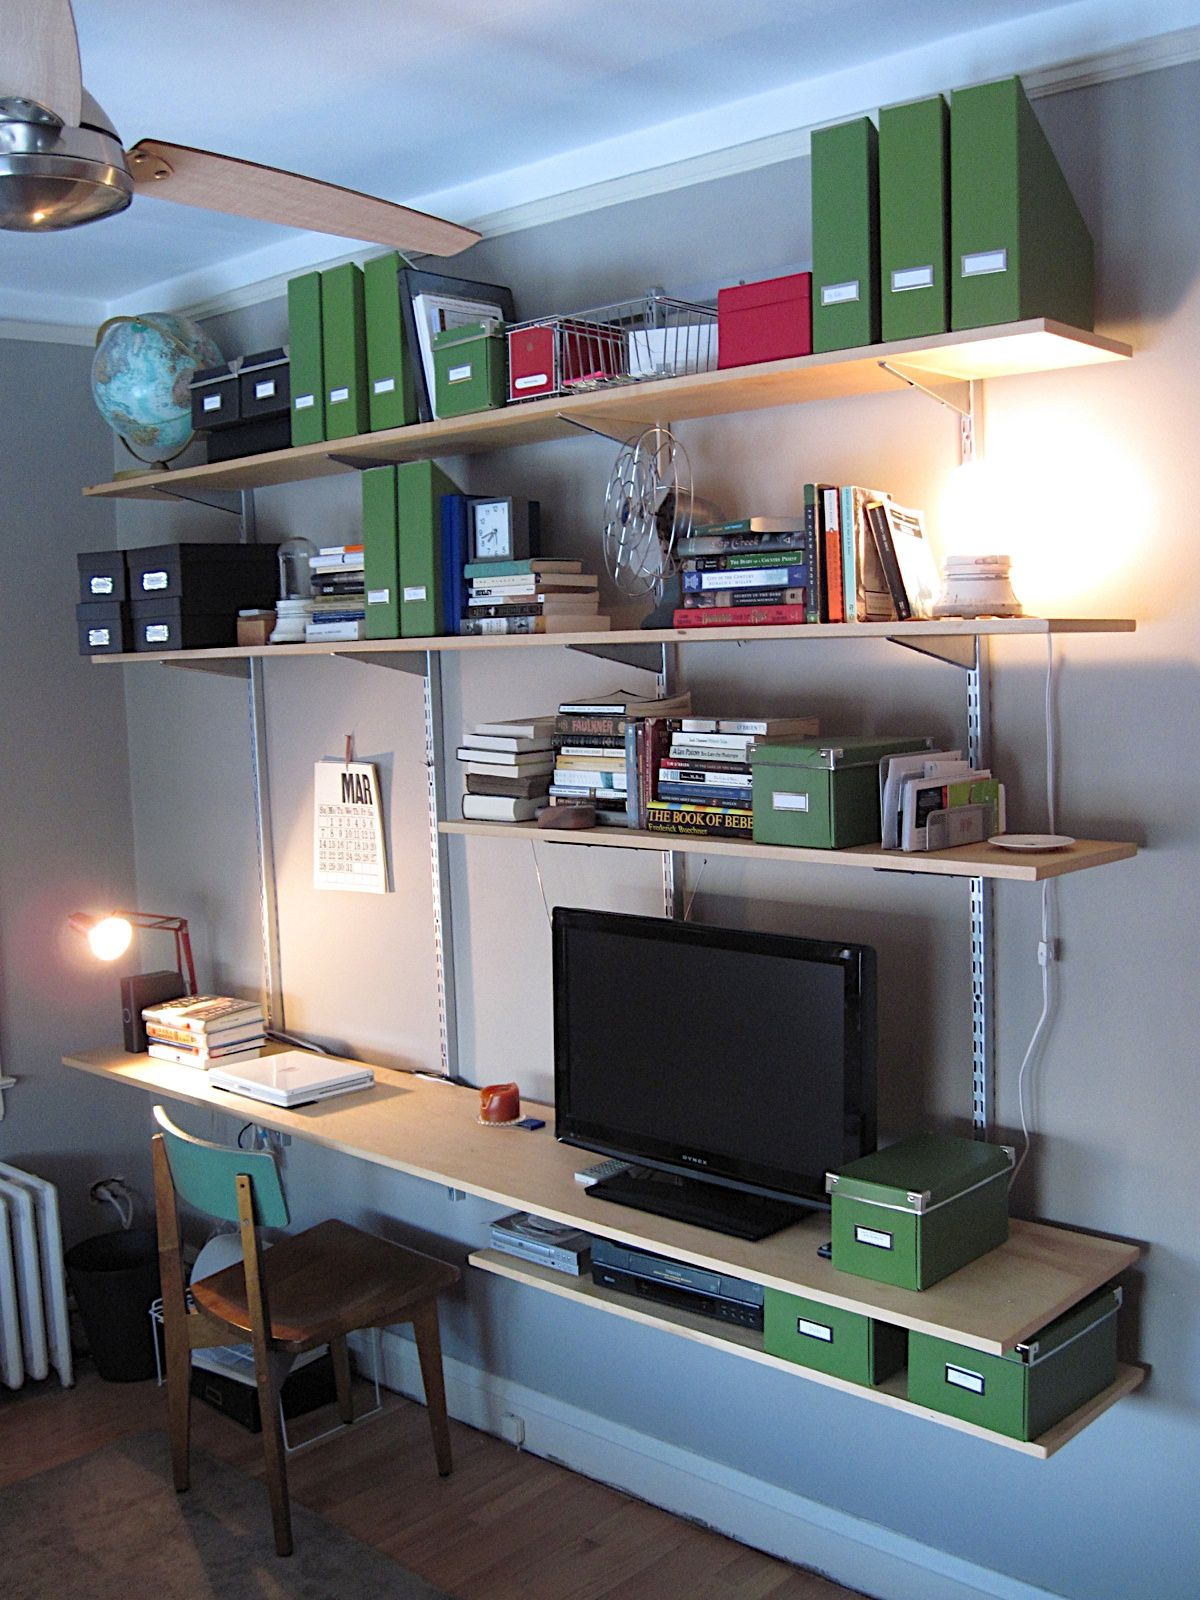 How To Build Your Own Modular Shelving Unit Modular Shelving Shelving Track Shelving